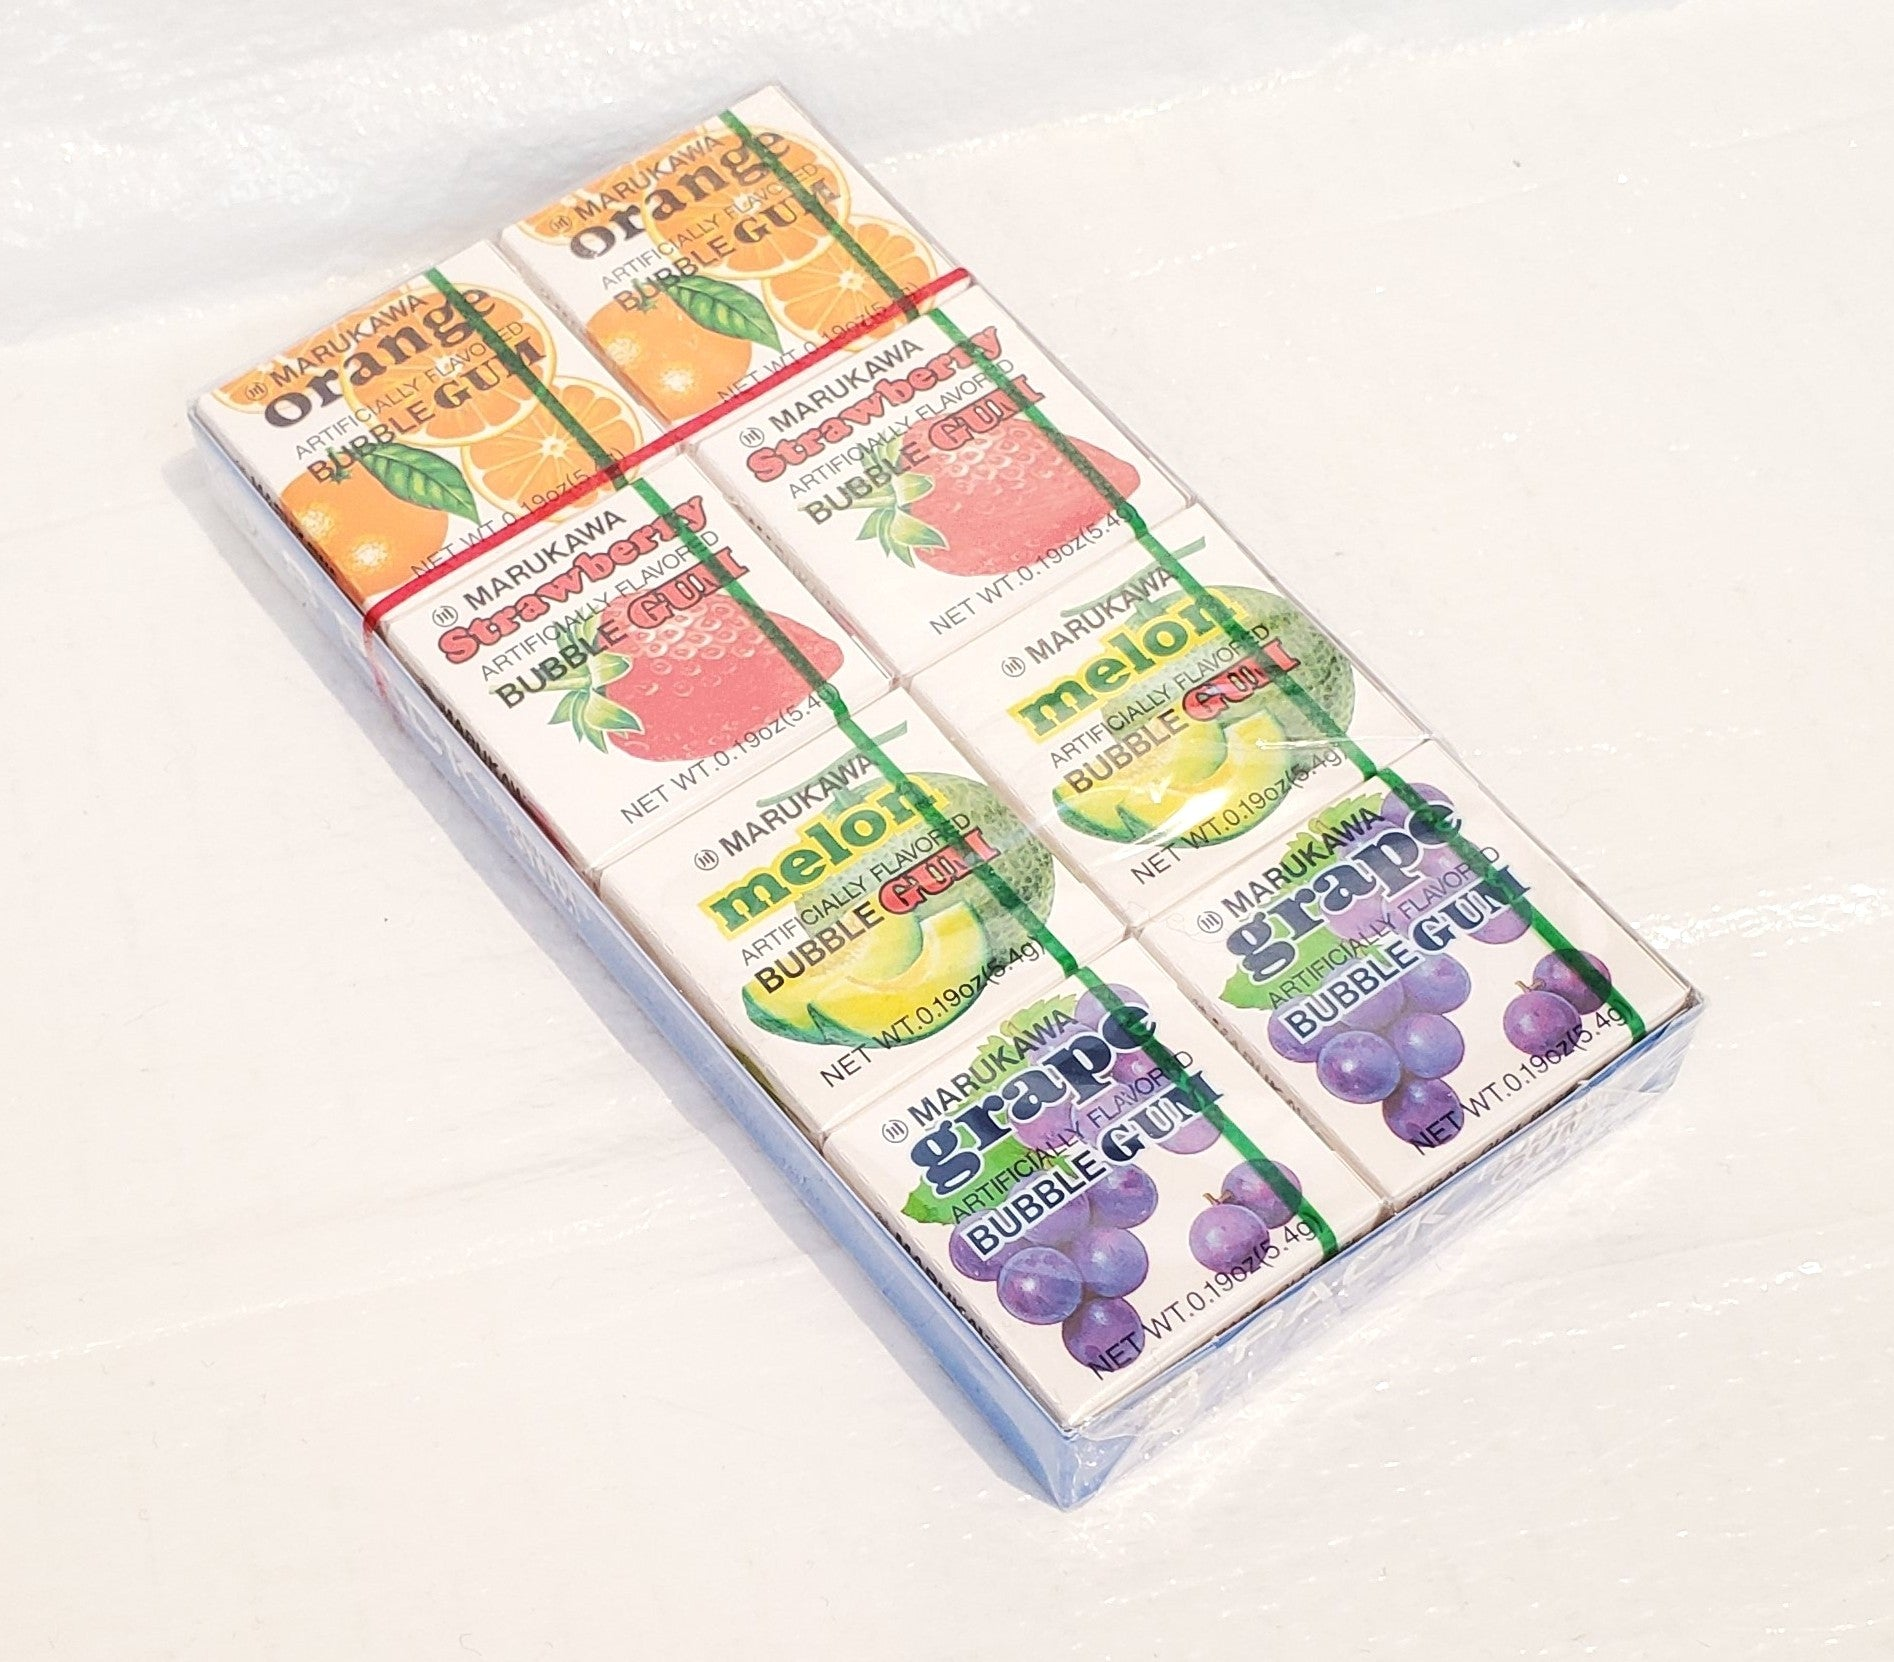 Marukawa 8 packed assorted fruits bubble gum 丸川水果味泡泡糖